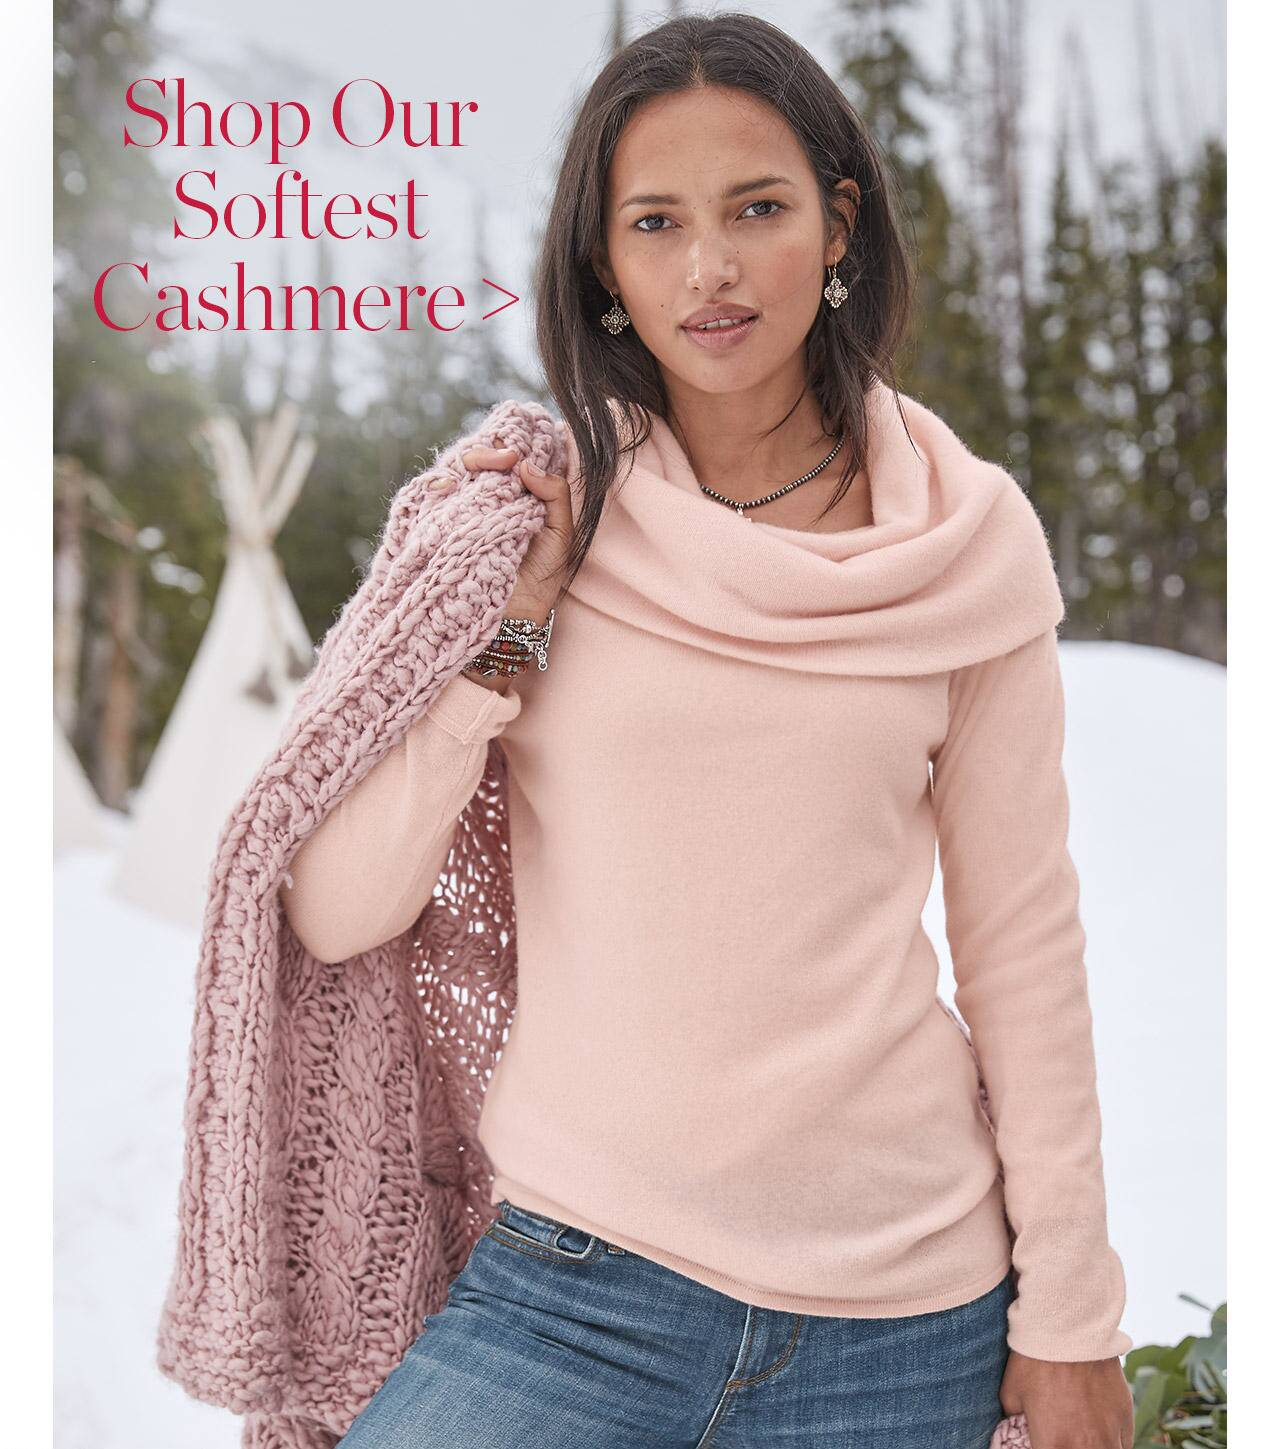 Shop Our Softest Cashmere